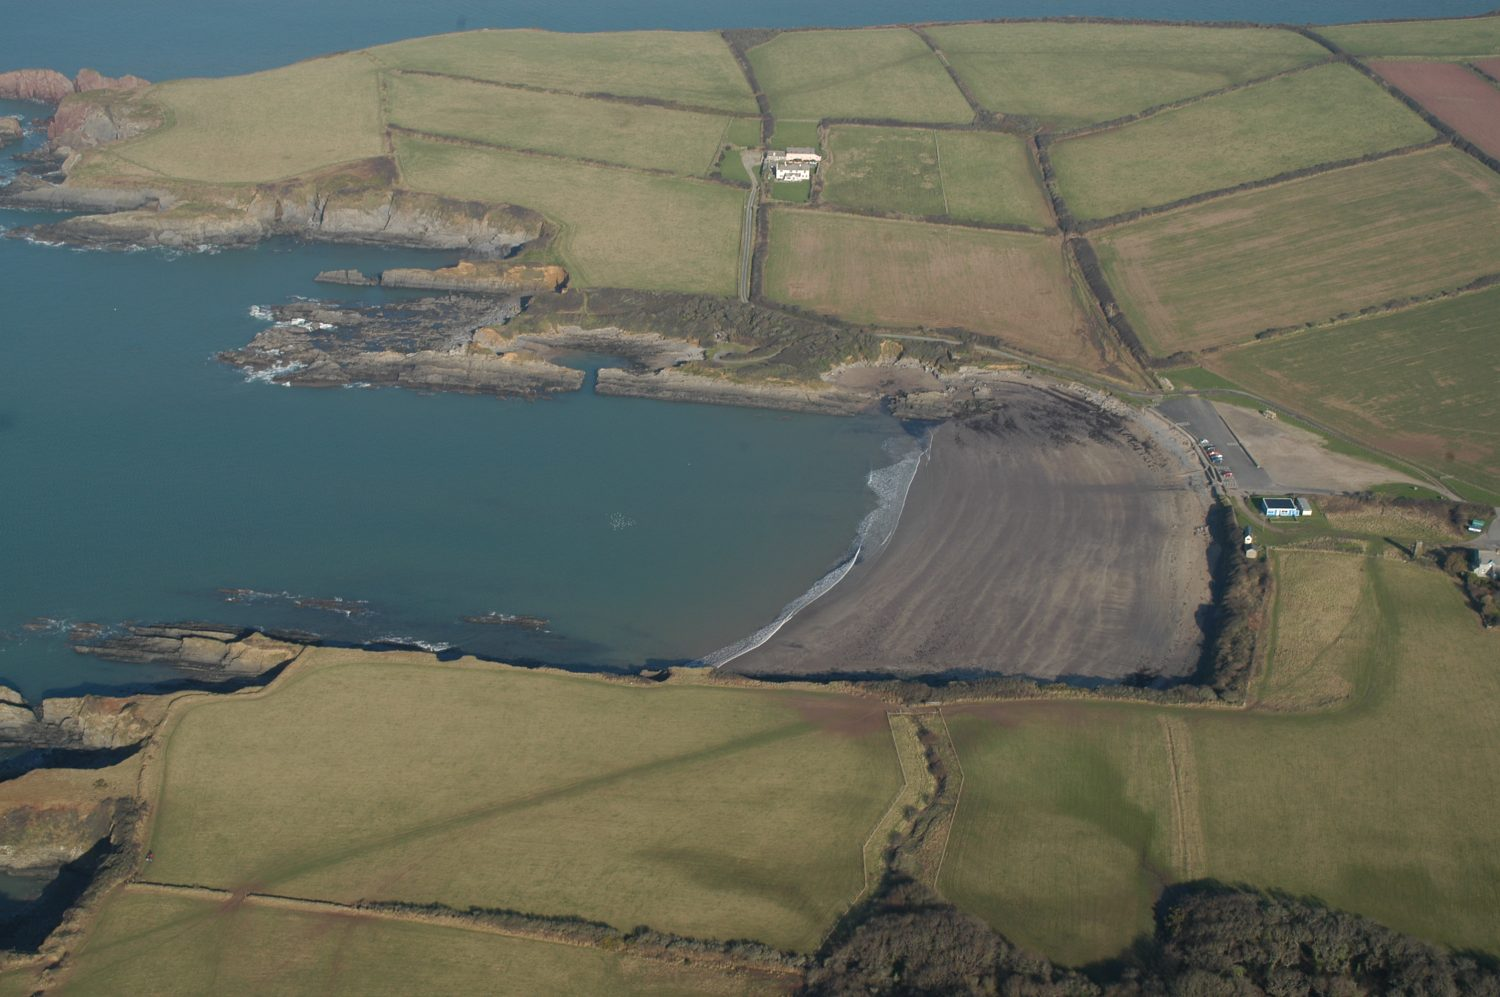 Aerial photograph of West Angle Bay, Pembrokeshire, Wales, UK